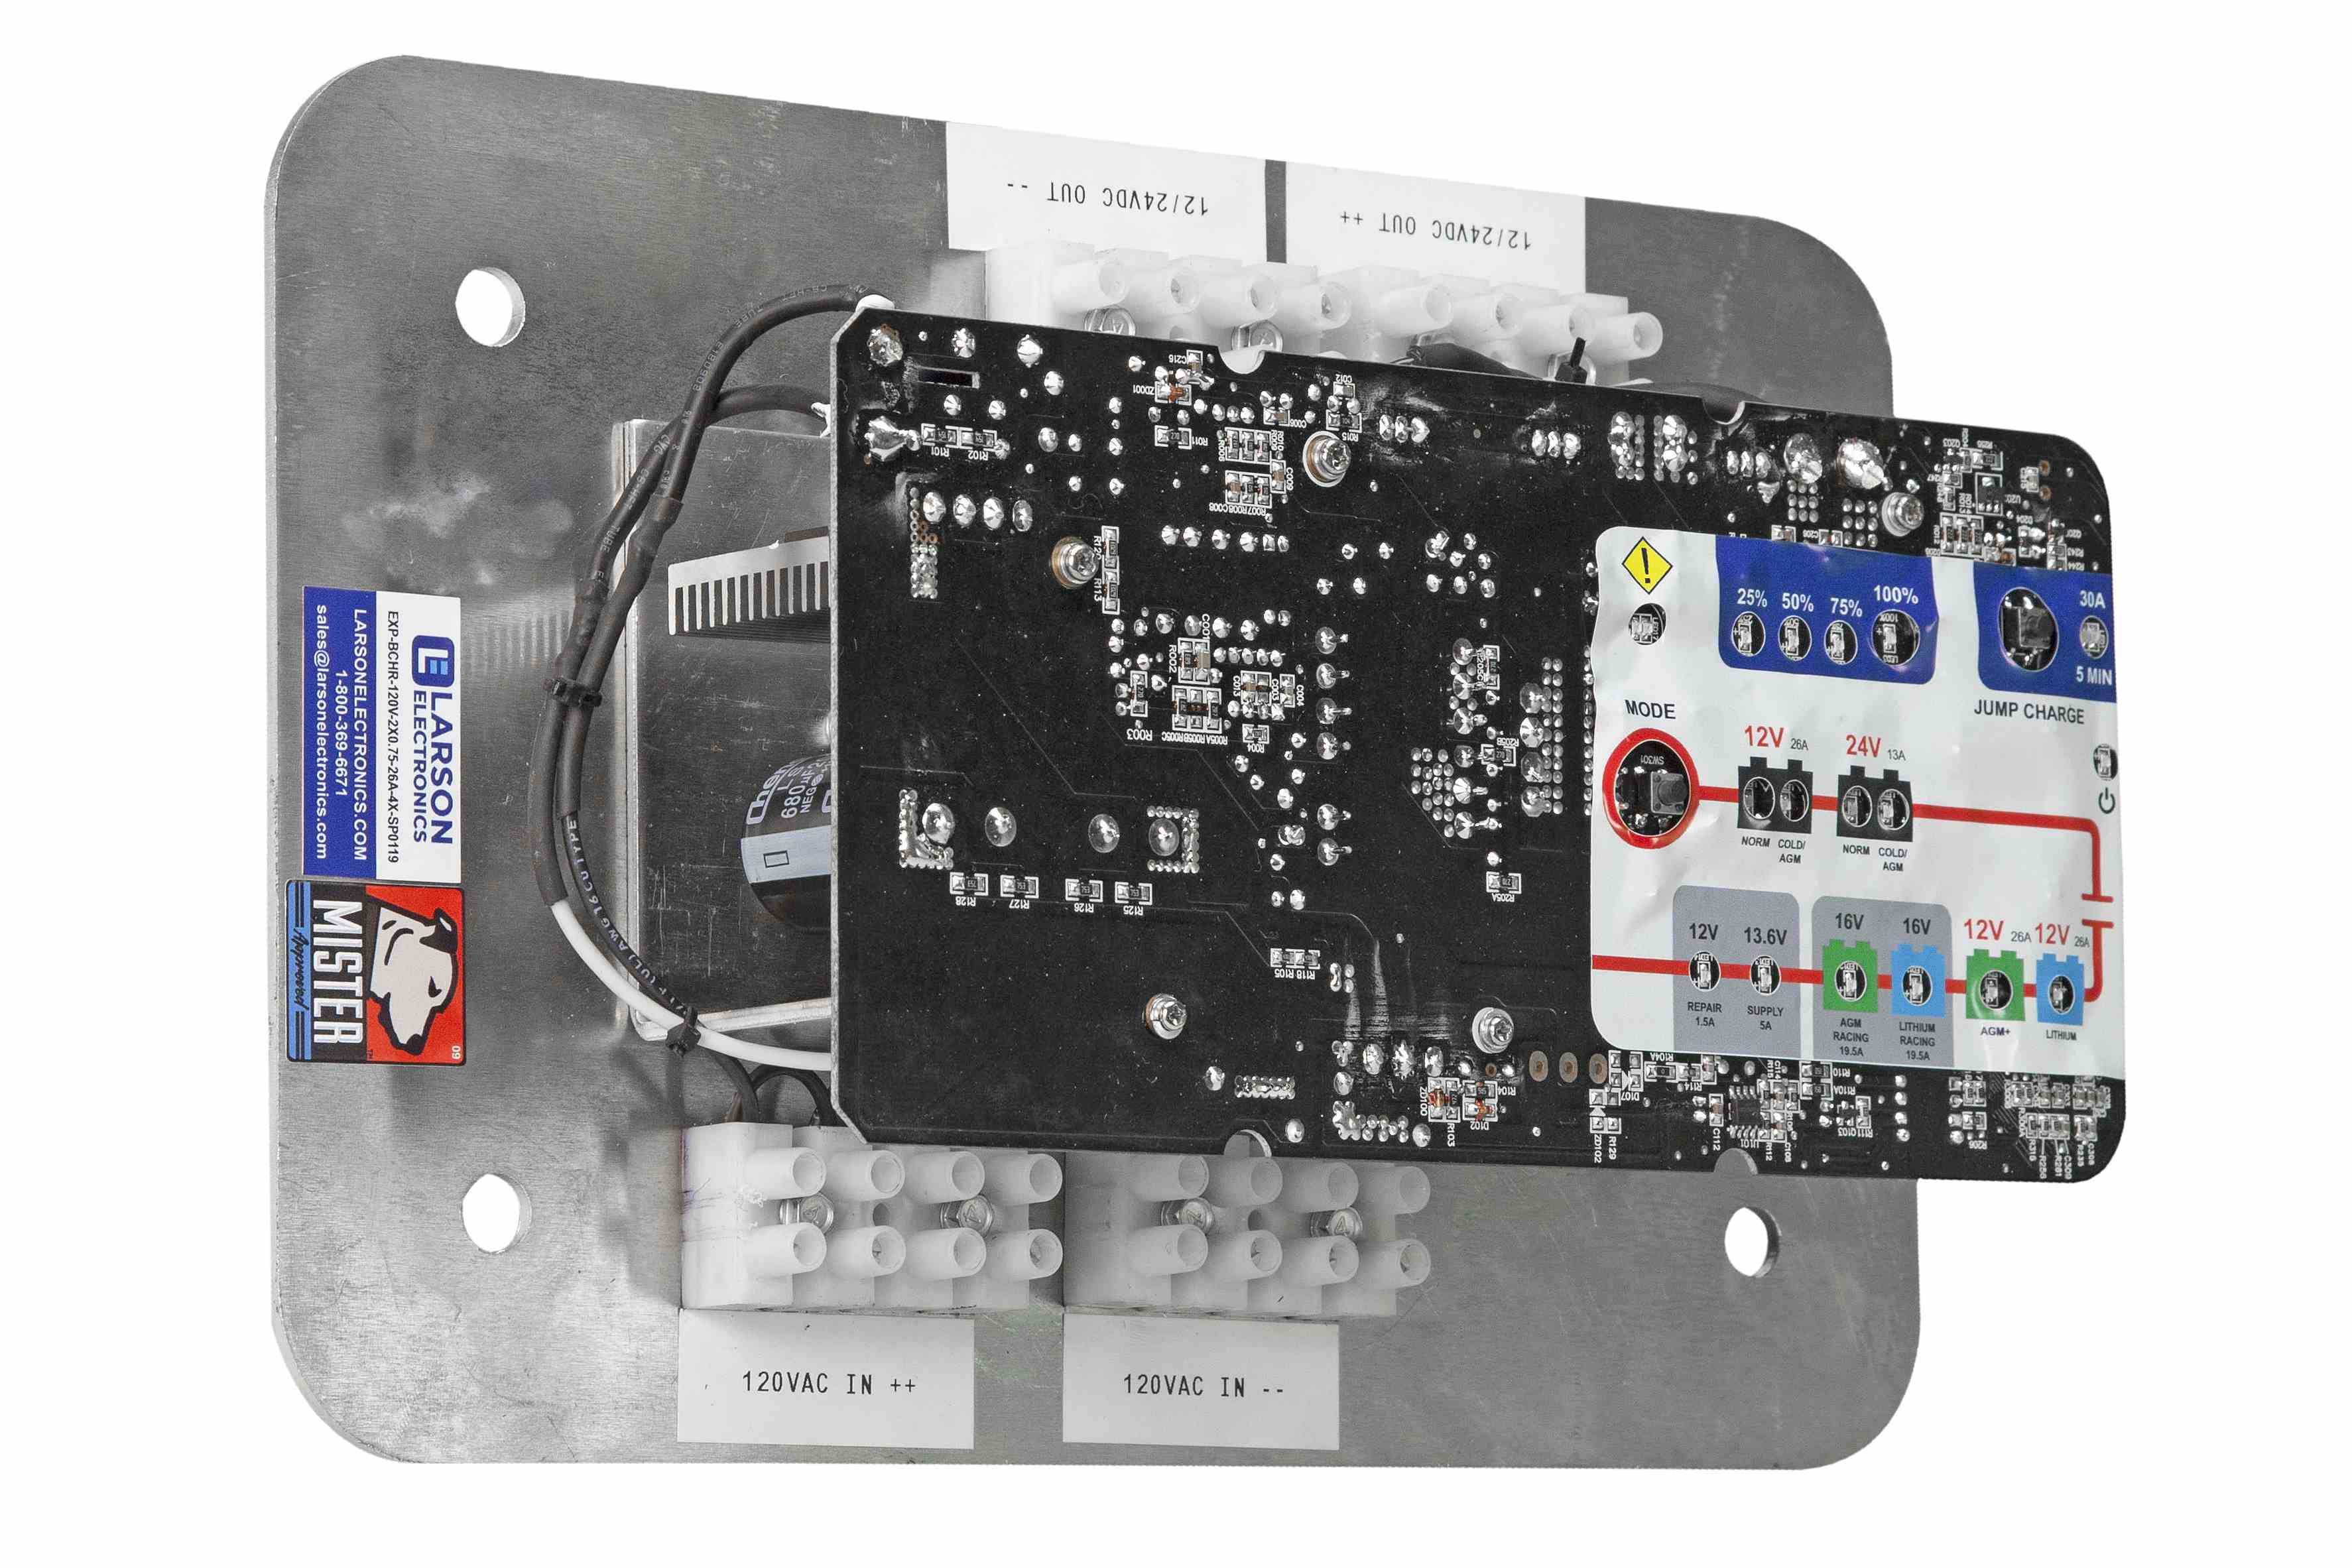 Replacement Circuit Board and Internal Back Plate for EXP-BCHR-120V-2X0.75-26A-4X Battery Charger